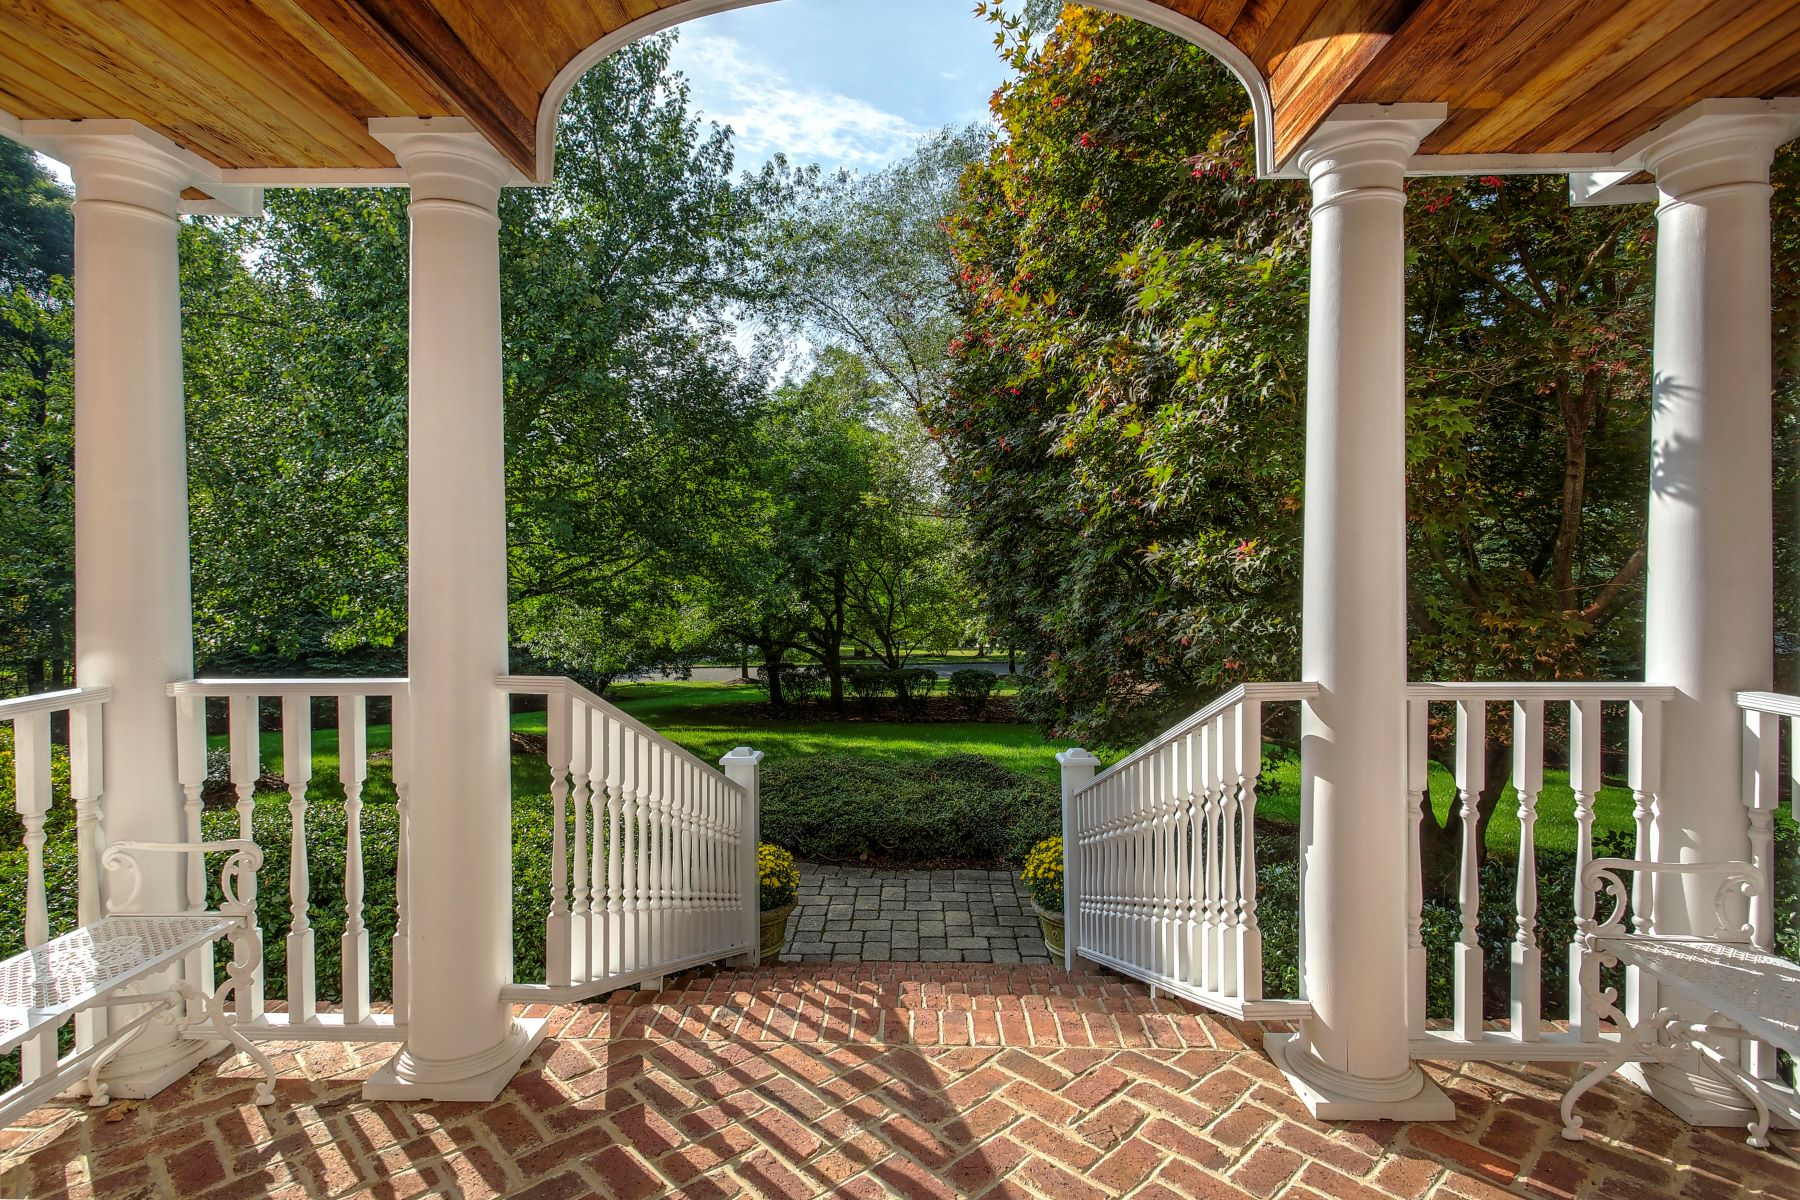 Single Family Home for Sale at Exceptional Value in Premier Location 94 Emily Road Basking Ridge, New Jersey 07920 United States